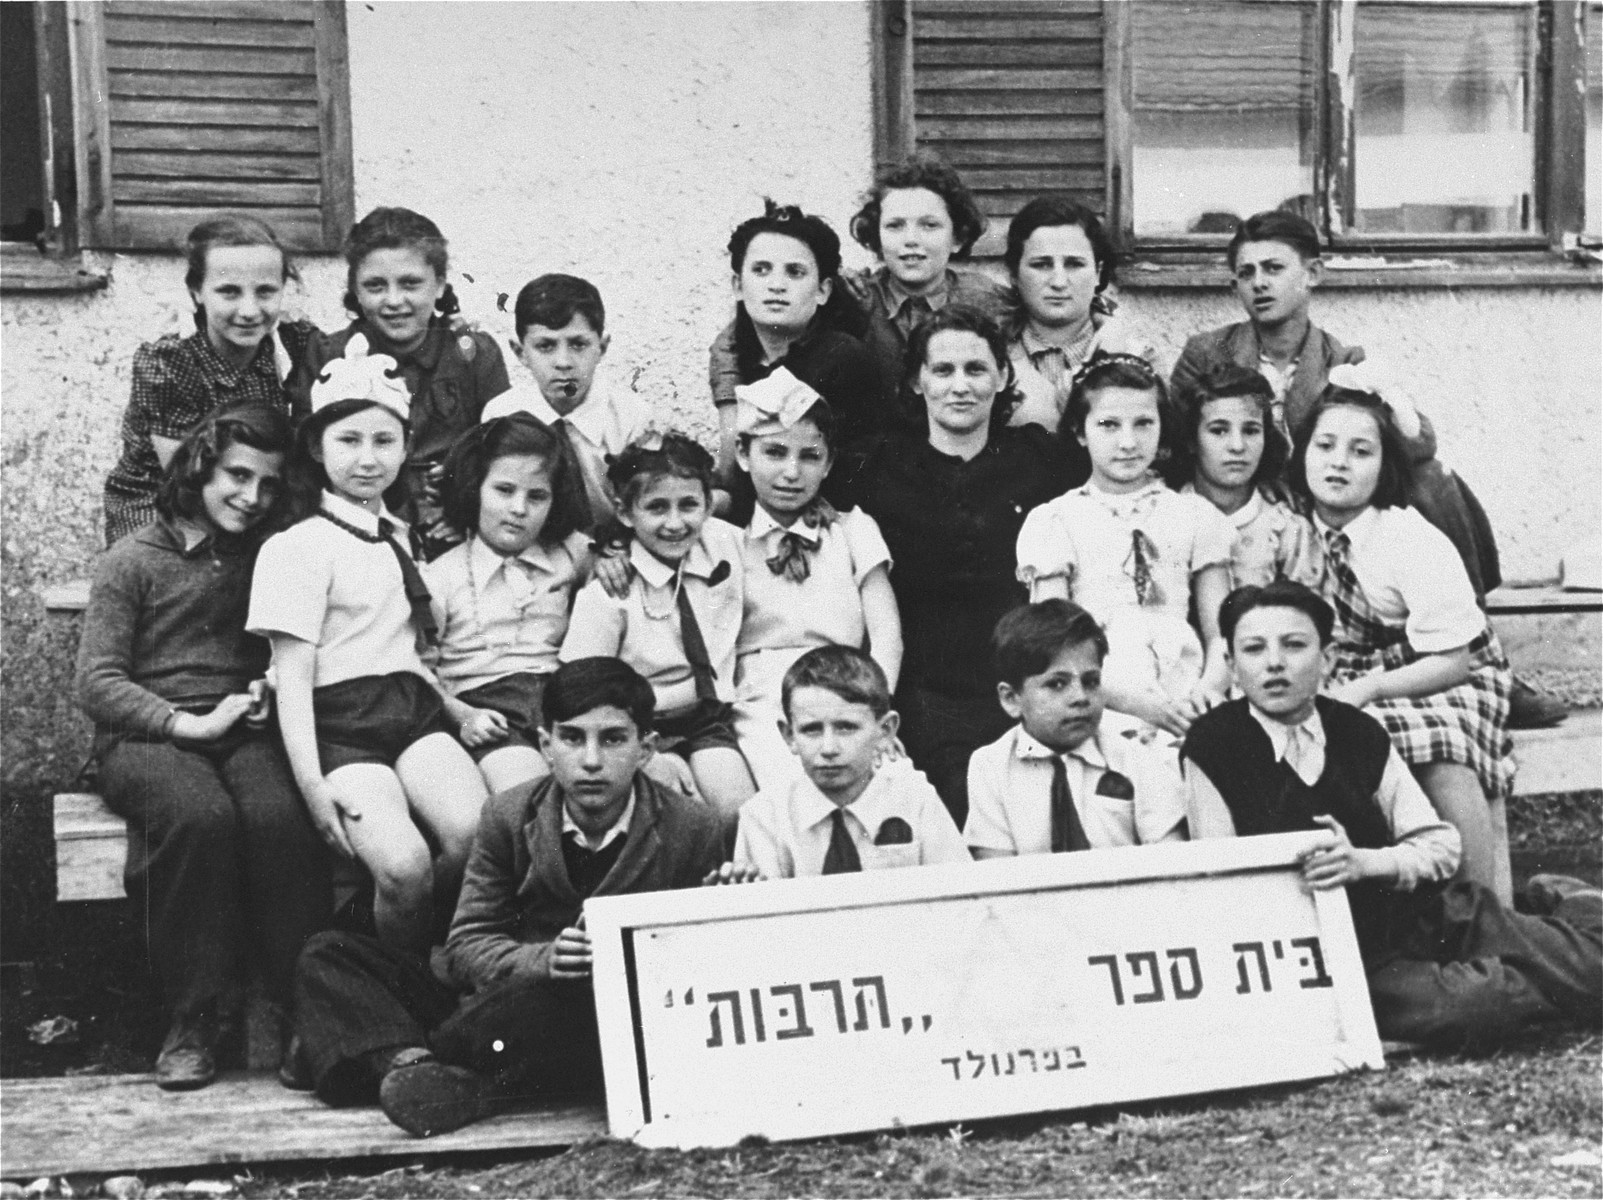 Class photograph of the Tarbut School in the Foehrenwald displaced persons camp.    Pictured in the back row, far right, is Johnny (Yitzhak) Brottman.  Pictured in the second row from left are:  Deborah Korolchuk, Zofja Fajnsztejn, Lucia ?, Esther Kaplan, Chaia Libstug, Mora Ruksin, Roza Saifert and Rosa Li.  In the front row are Bezalel Rottman (front, left) and Paul Brottman (right, holding the sign).